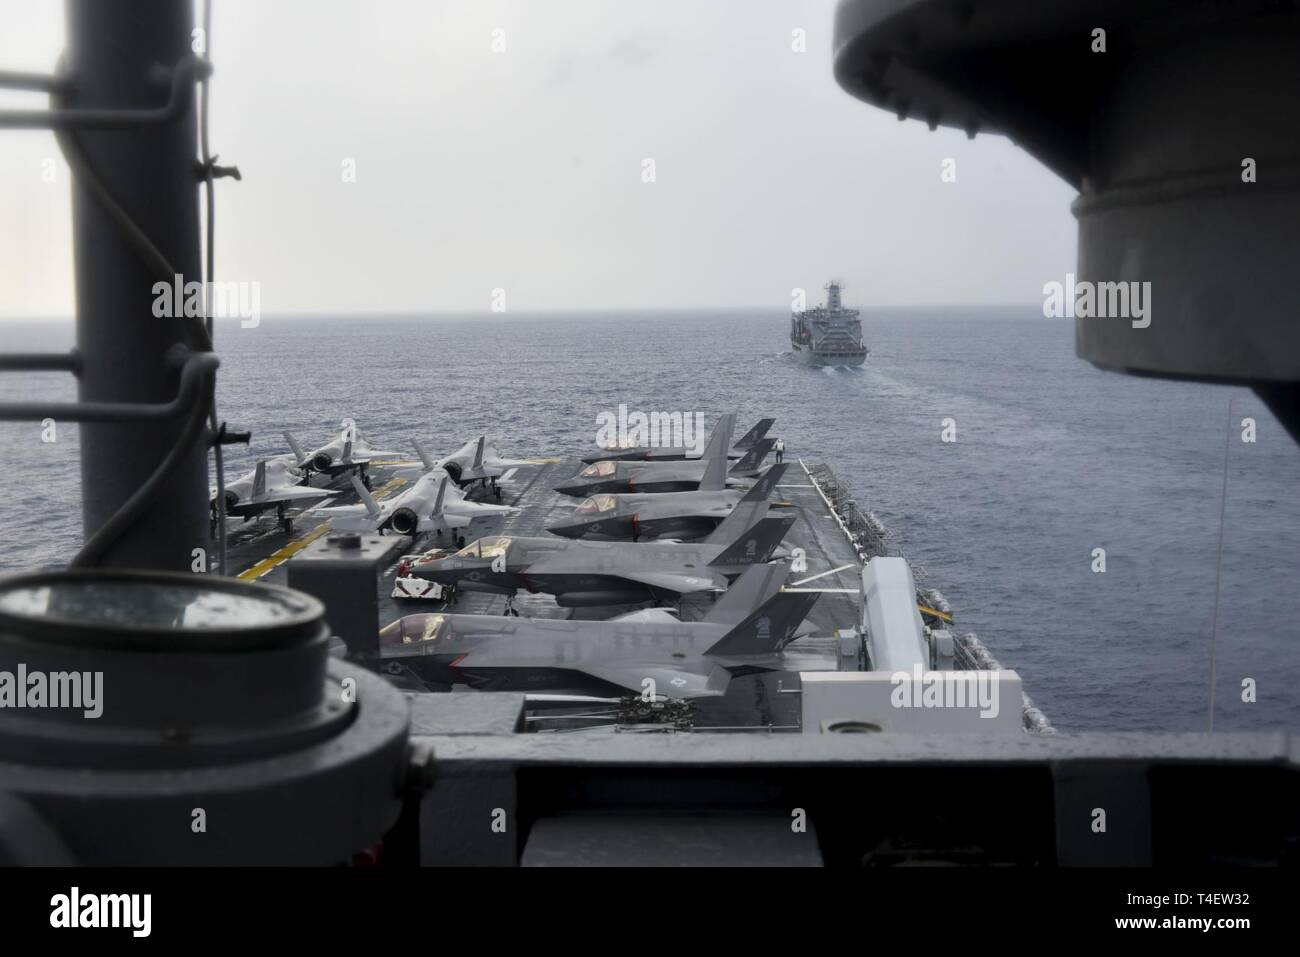 SOUTH CHINA SEA (April 4, 2019) - The amphibious assault ship USS Wasp (LHD 1) approaches the fleet replenishment oiler USNS Pecos (T-AO 197) during a replenishment-at-sea during Exercise Balikatan 2019. Exercise Balikatan, in its 35th iteration, is an annual U.S., Philippine military training exercise focused on a variety of missions, including humanitarian assistance and disaster relief, counter-terrorism, and other combined military operations. - Stock Image